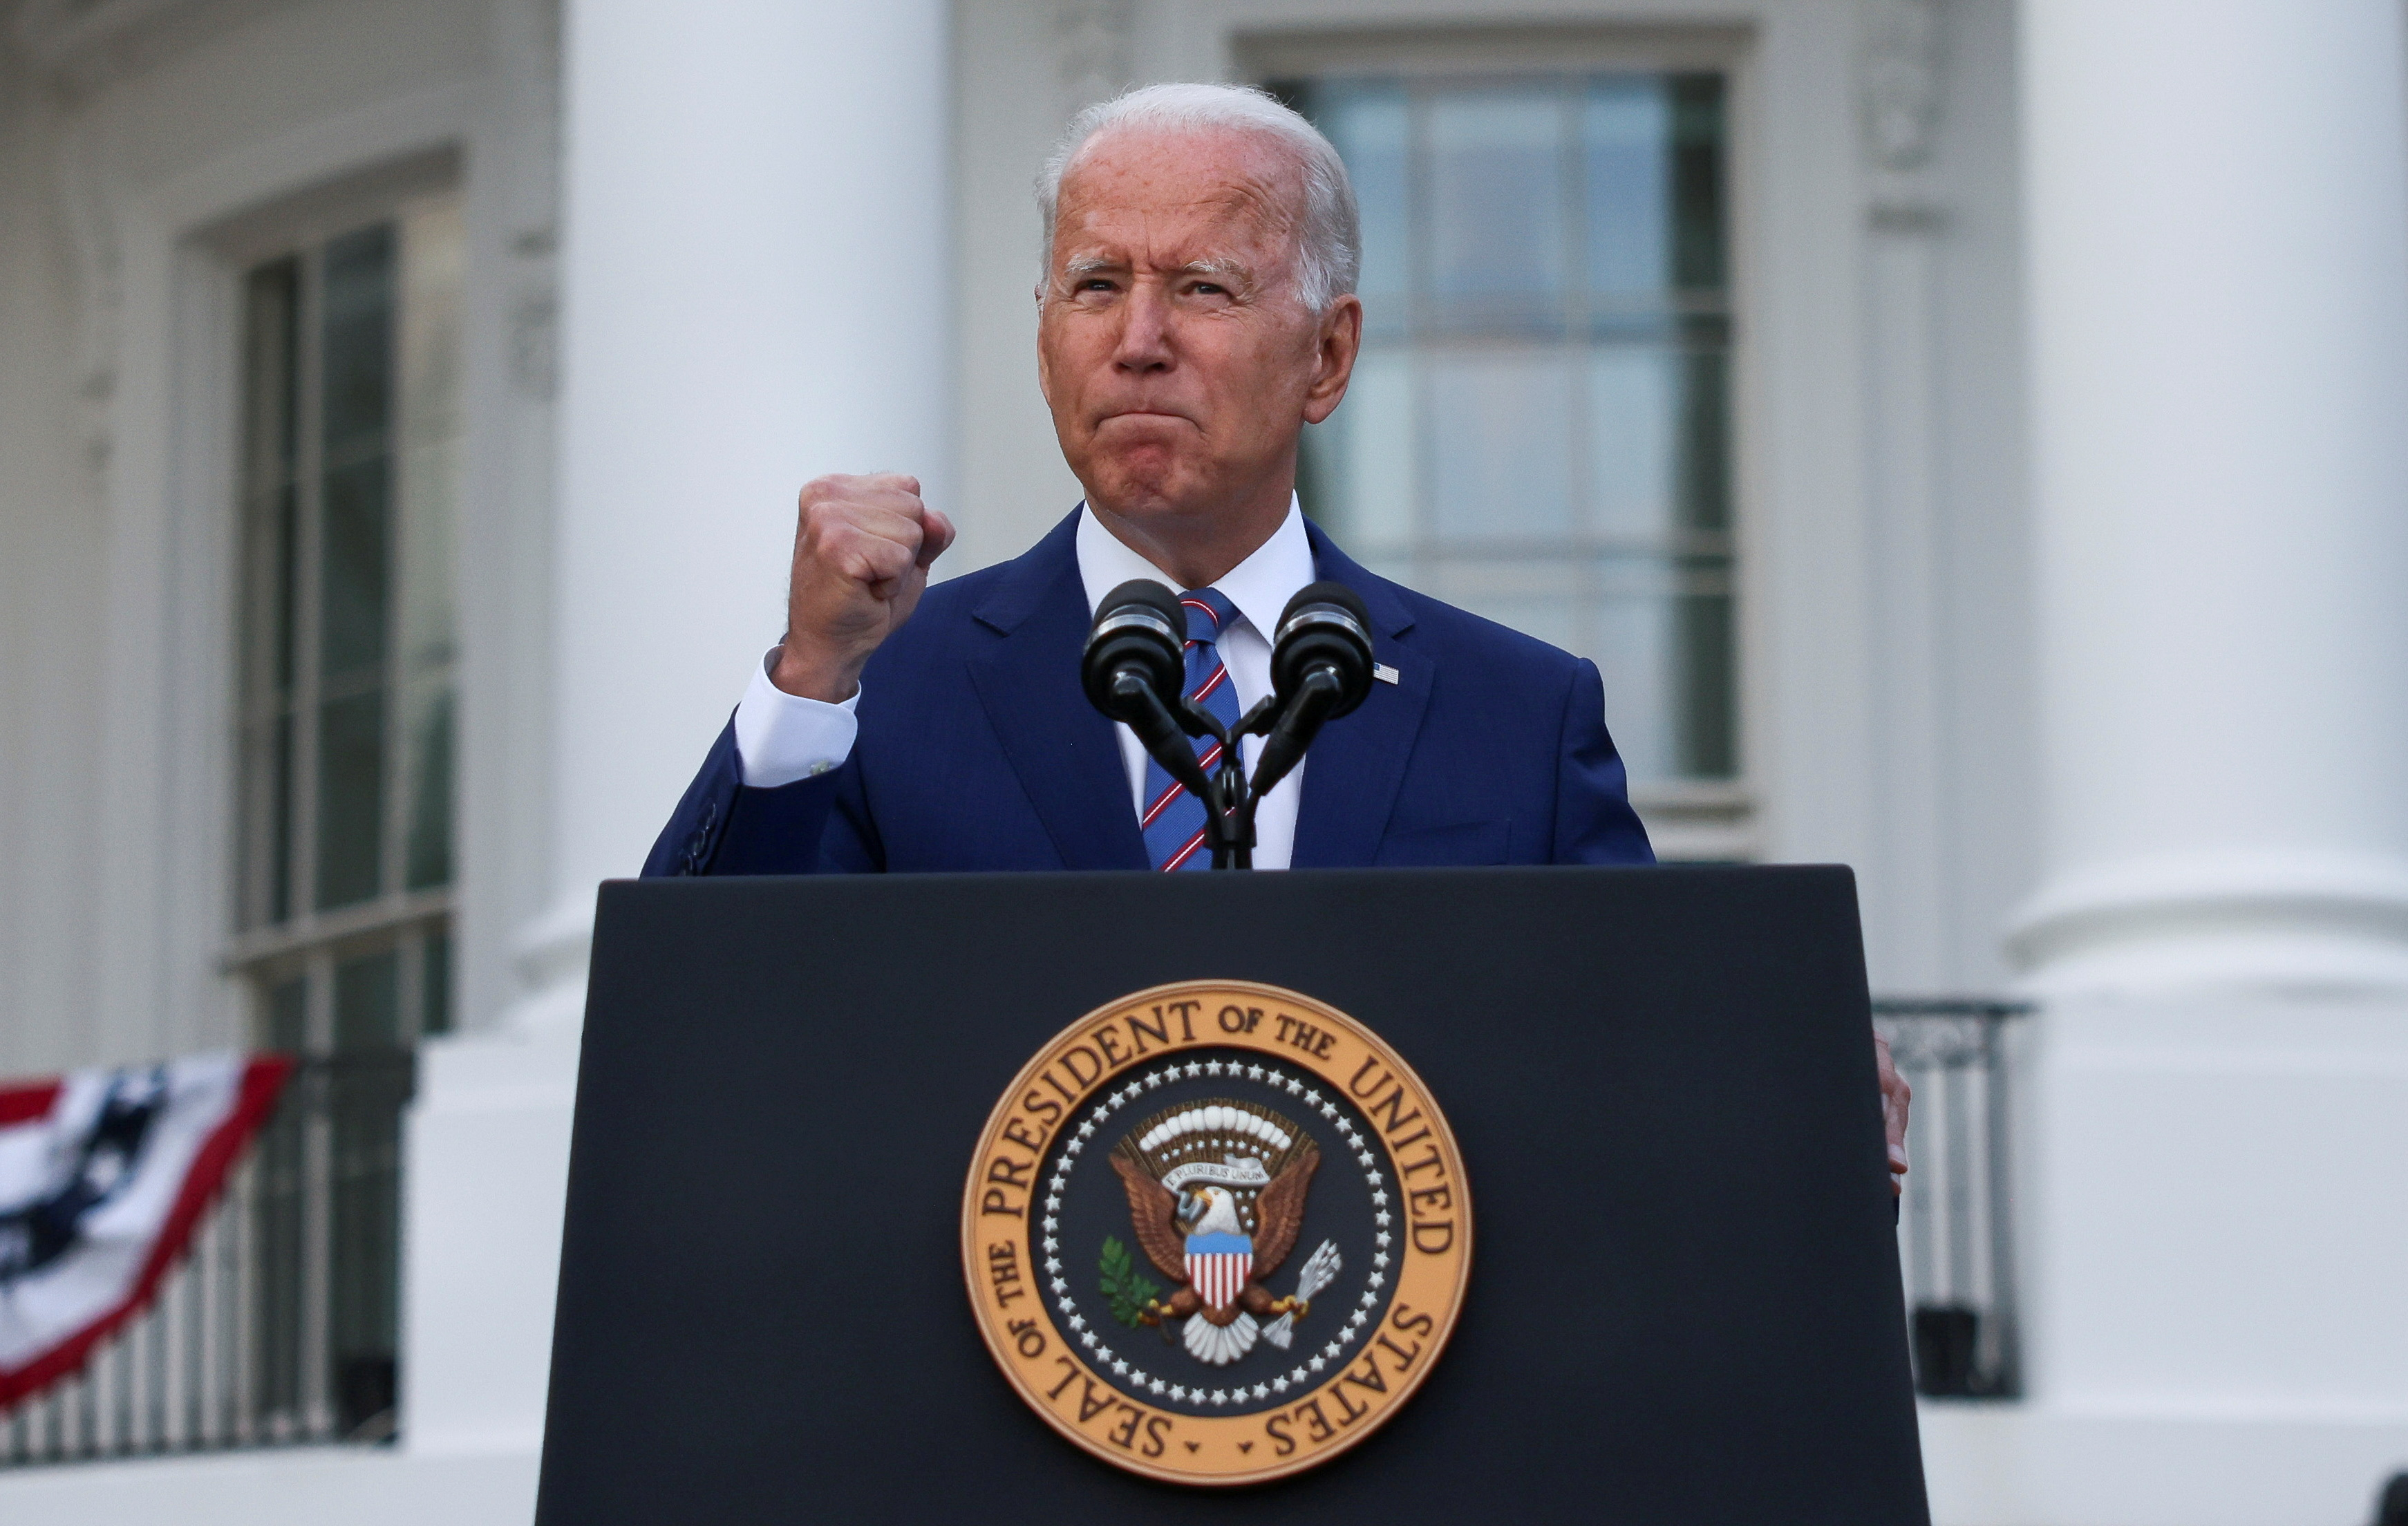 U.S. President Joe Biden delivers remarks at the White House at a celebration of Independence Day in Washington, U.S., July 4, 2021. REUTERS/Evelyn Hockstein/File Photo